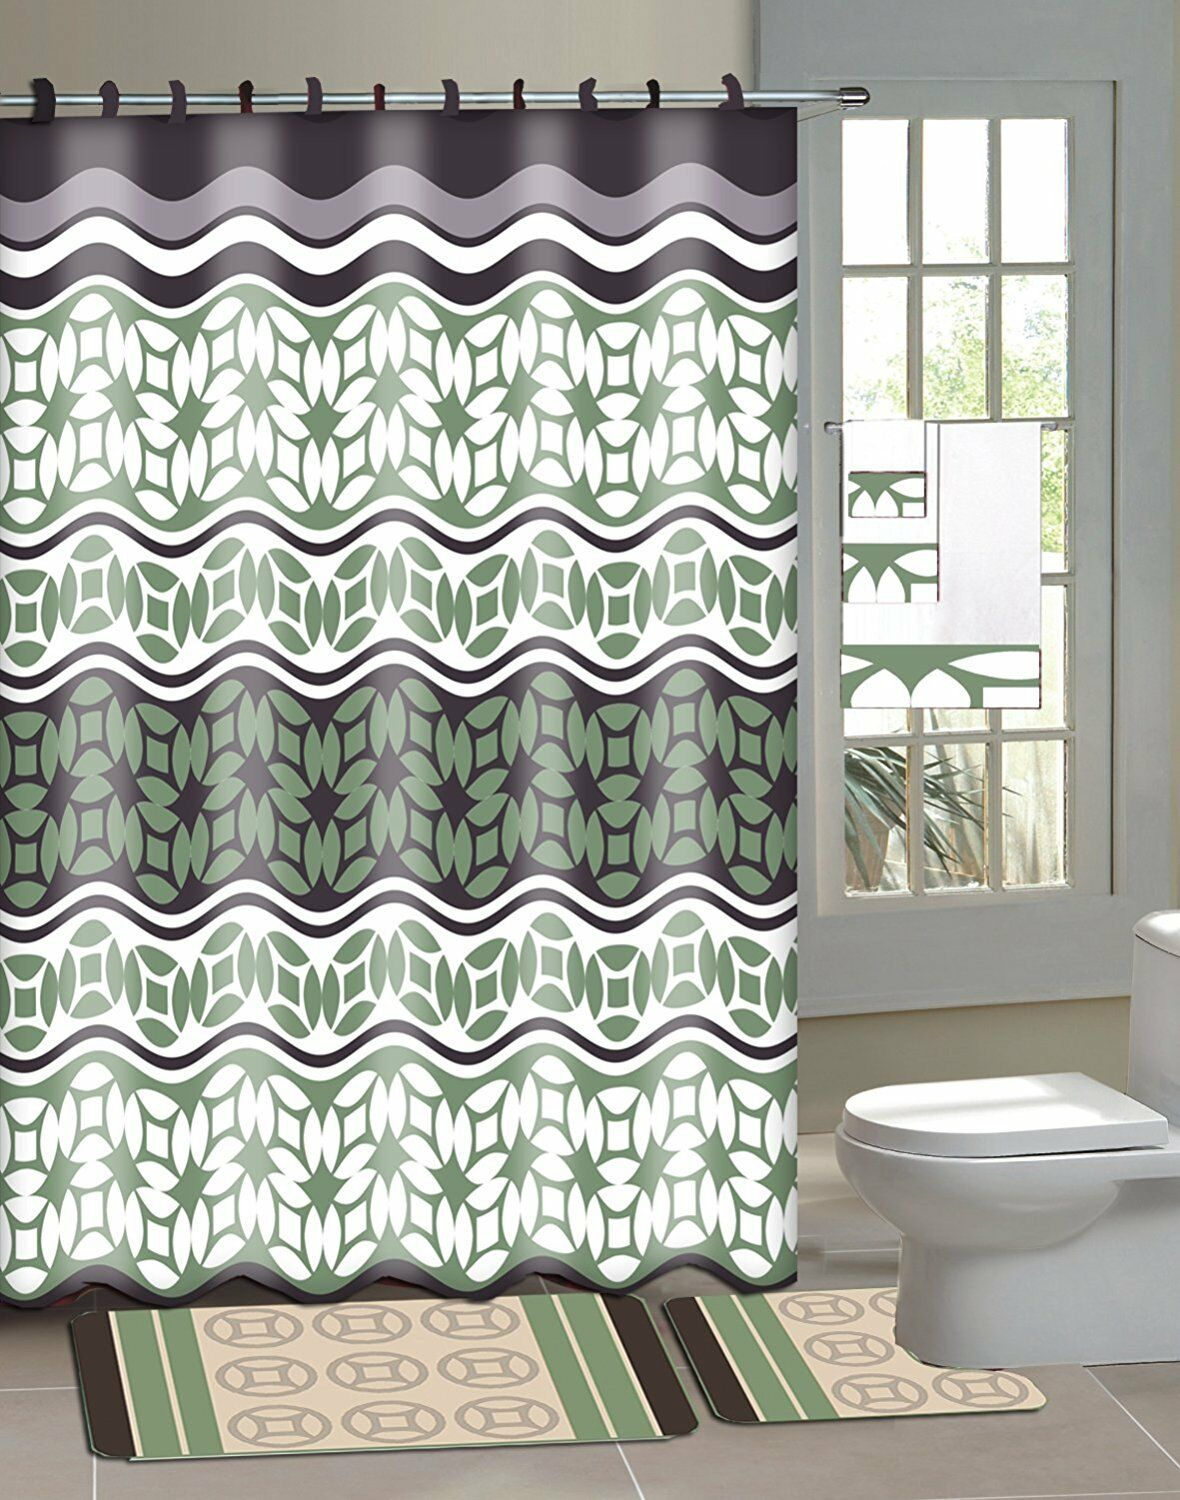 Laurel 15-Piece Bathroom Accessory Set Bath Mats Shower Curtain - Green